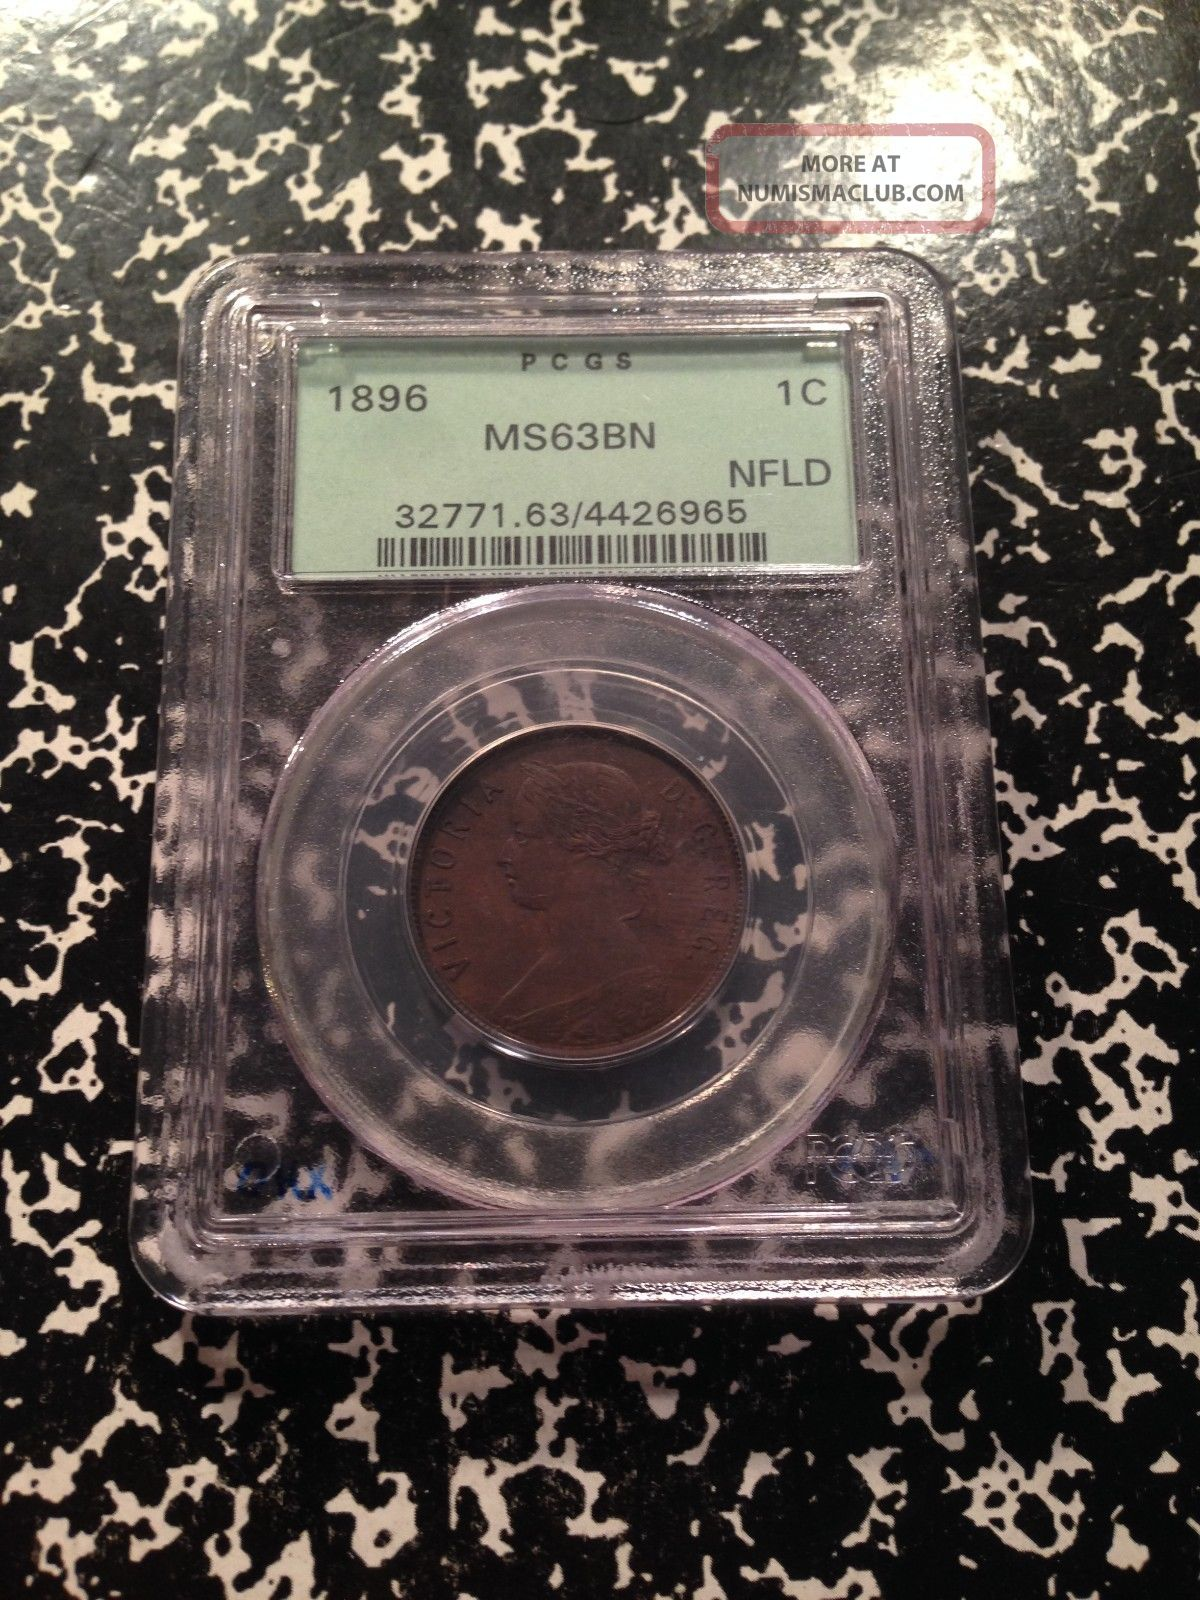 1896 Newfoundland Large Cent Pcgs Ms63 Brown Ga023 Scarce Coin Old Green Holder Coins: Canada photo